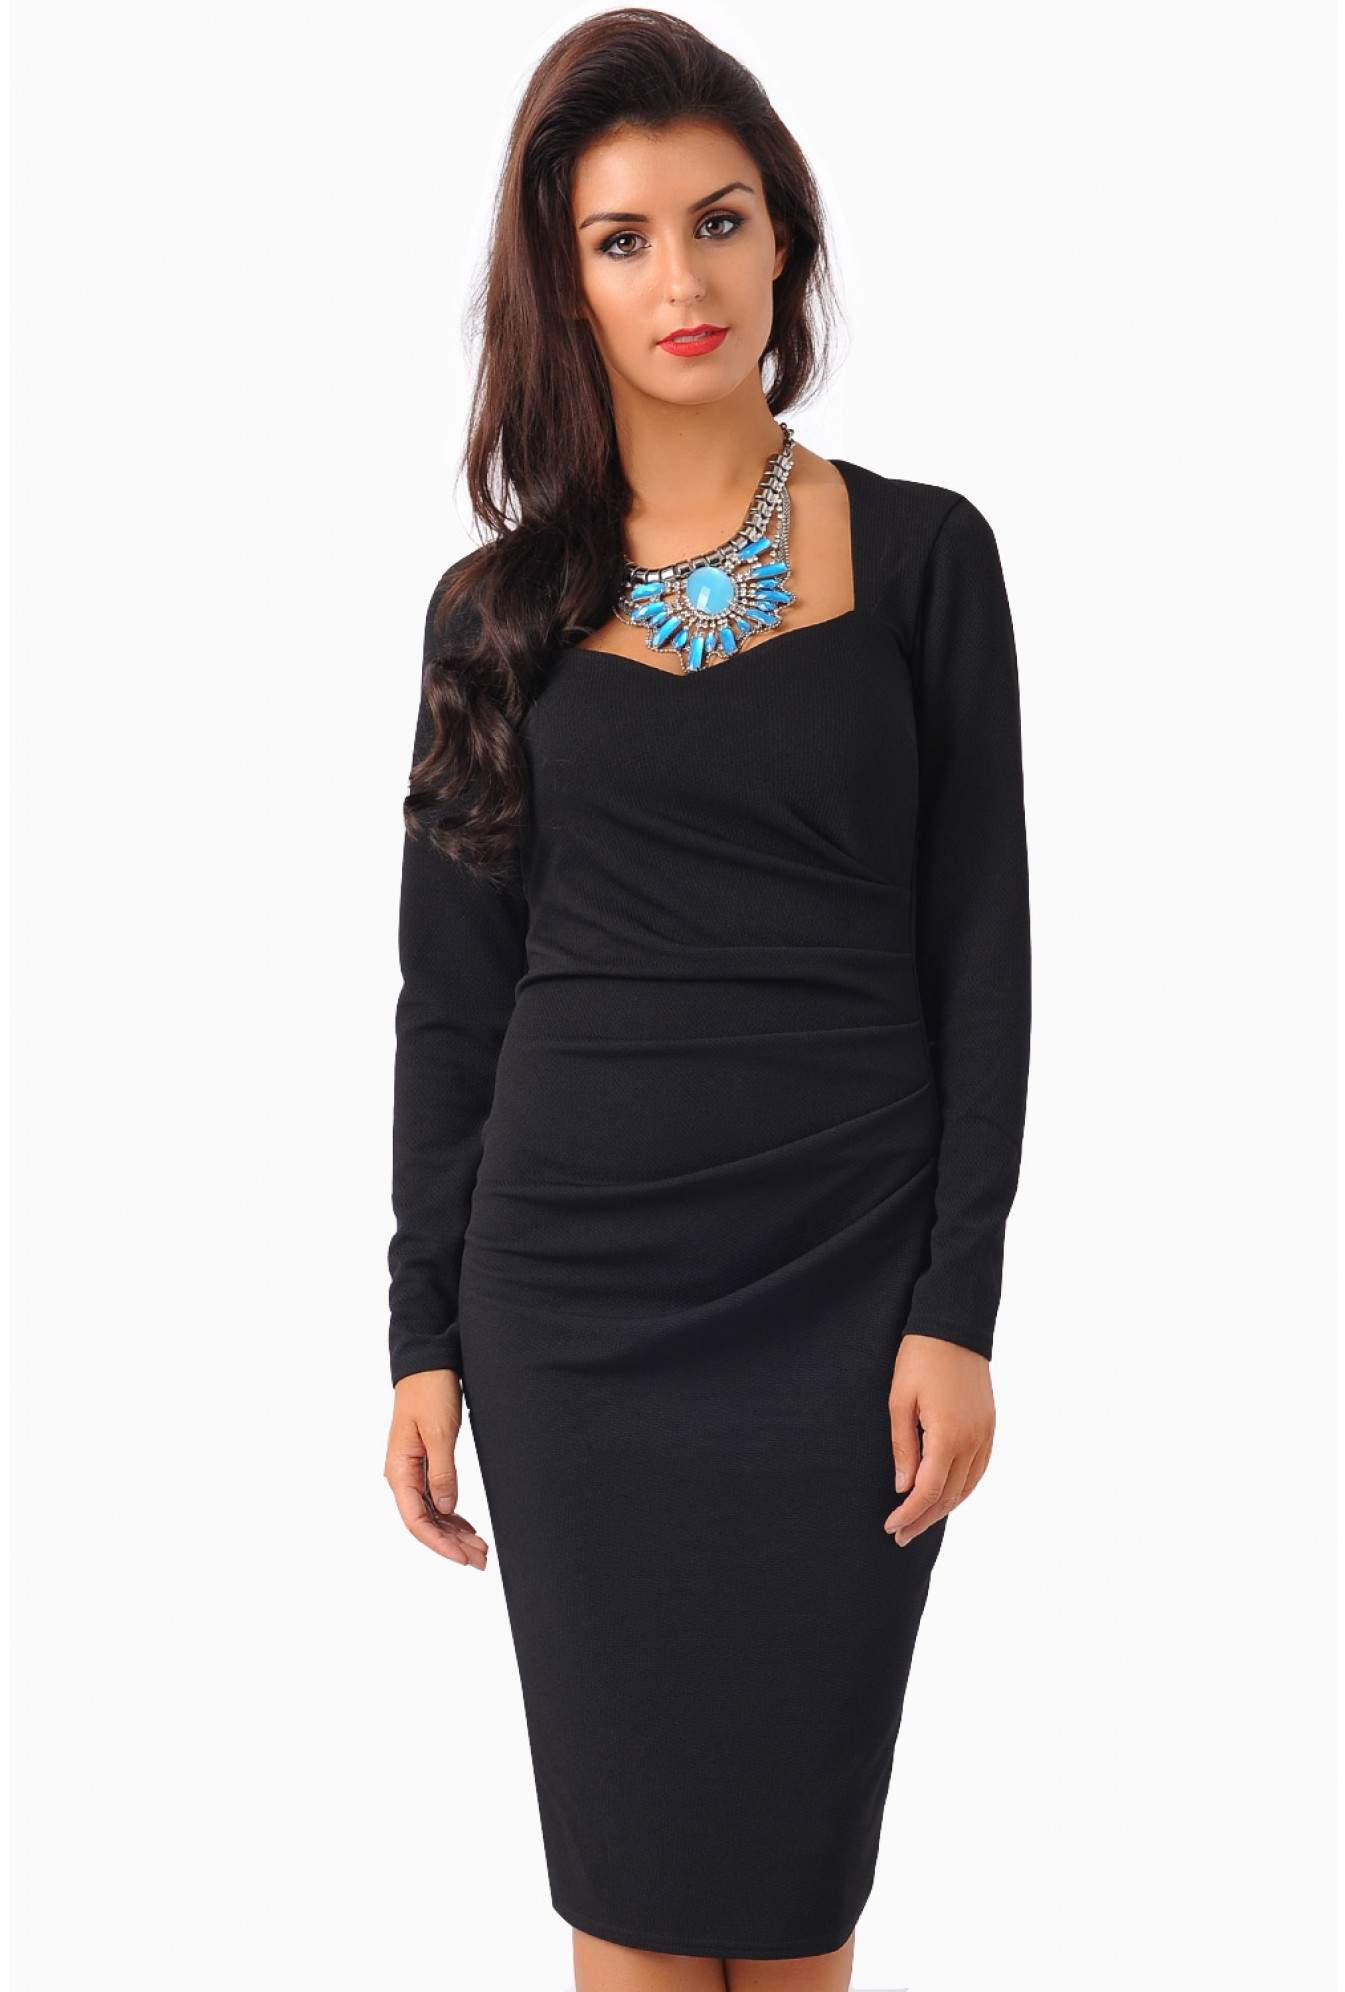 915d606ba8 Kimberly Ruched Jersey Dress in Black | iCLOTHING